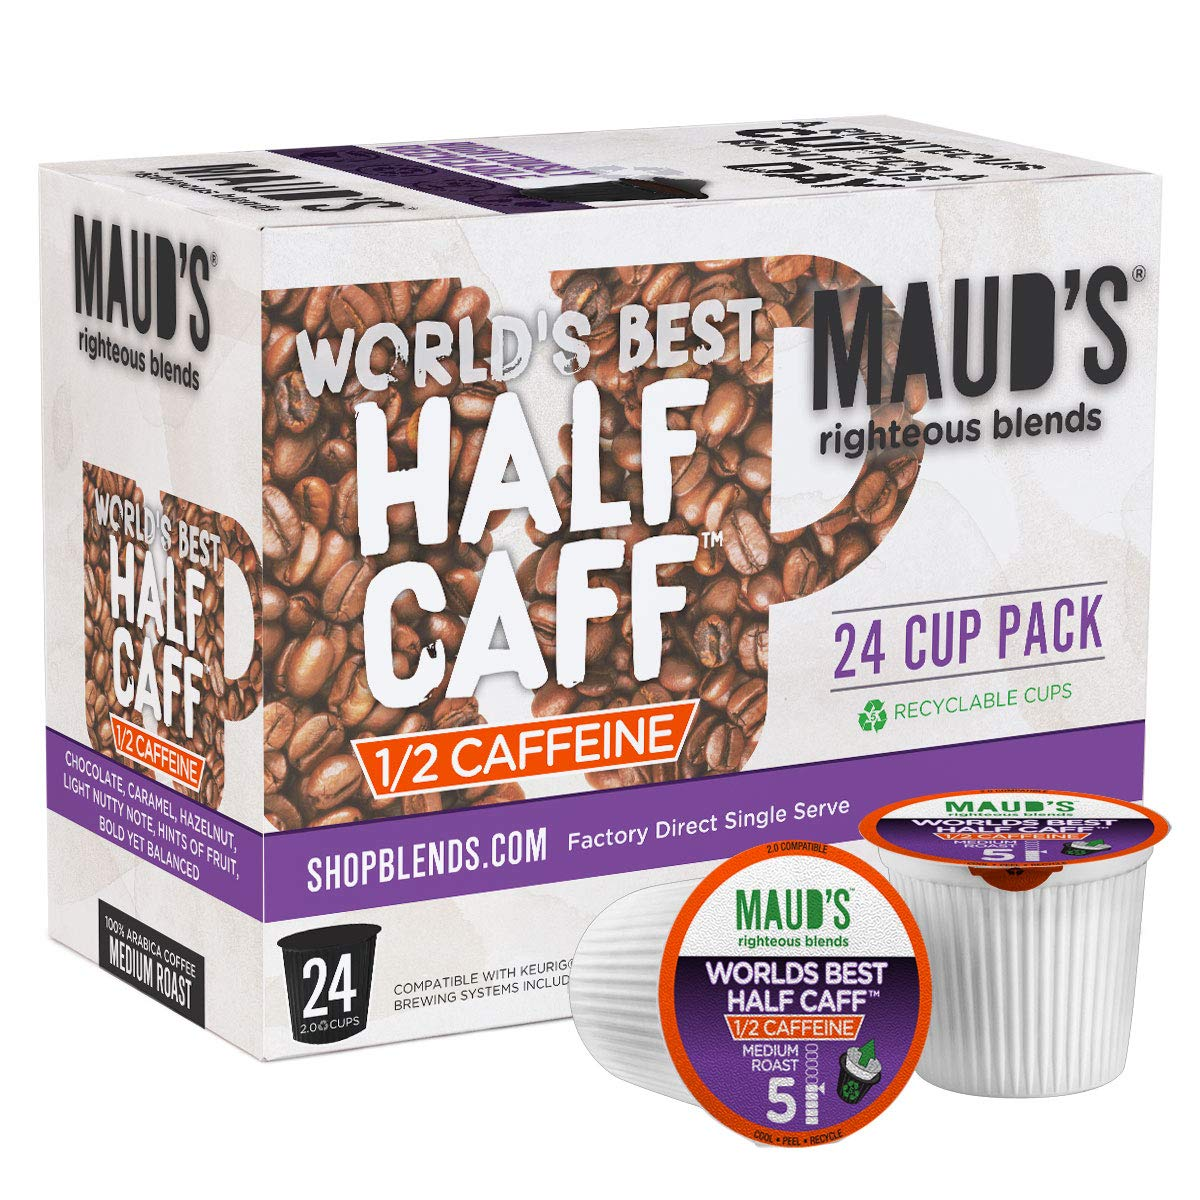 Maud's Half Caff Coffee (World's Best Half Caff), 24ct. Recyclable Single Serve Half Caff Coffee Pods – 100% Arabica Coffee California Roasted, Keurig Half Caff K Cup Compatible Including 2.0